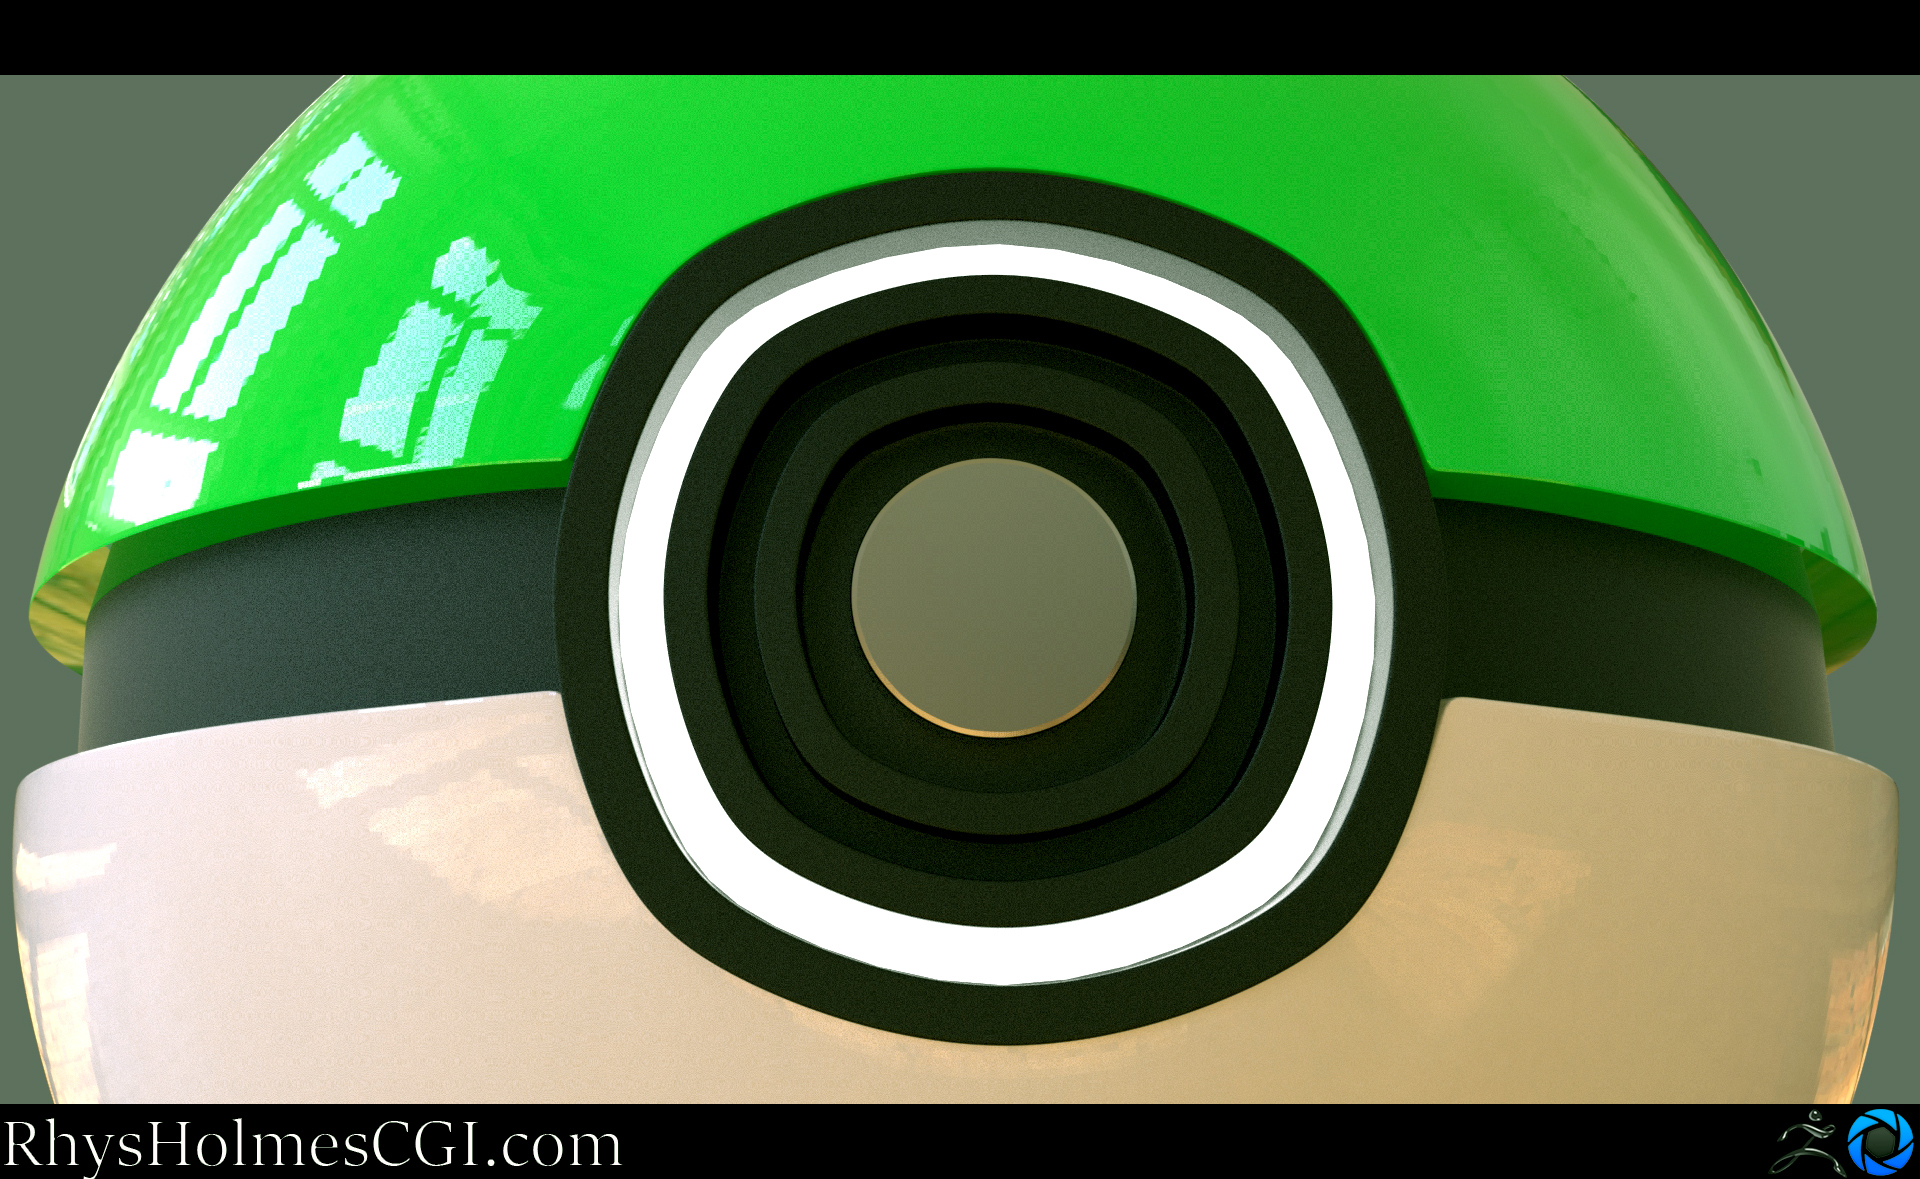 Model 2_Pokeball-Green_LED On_close up_With template.jpg